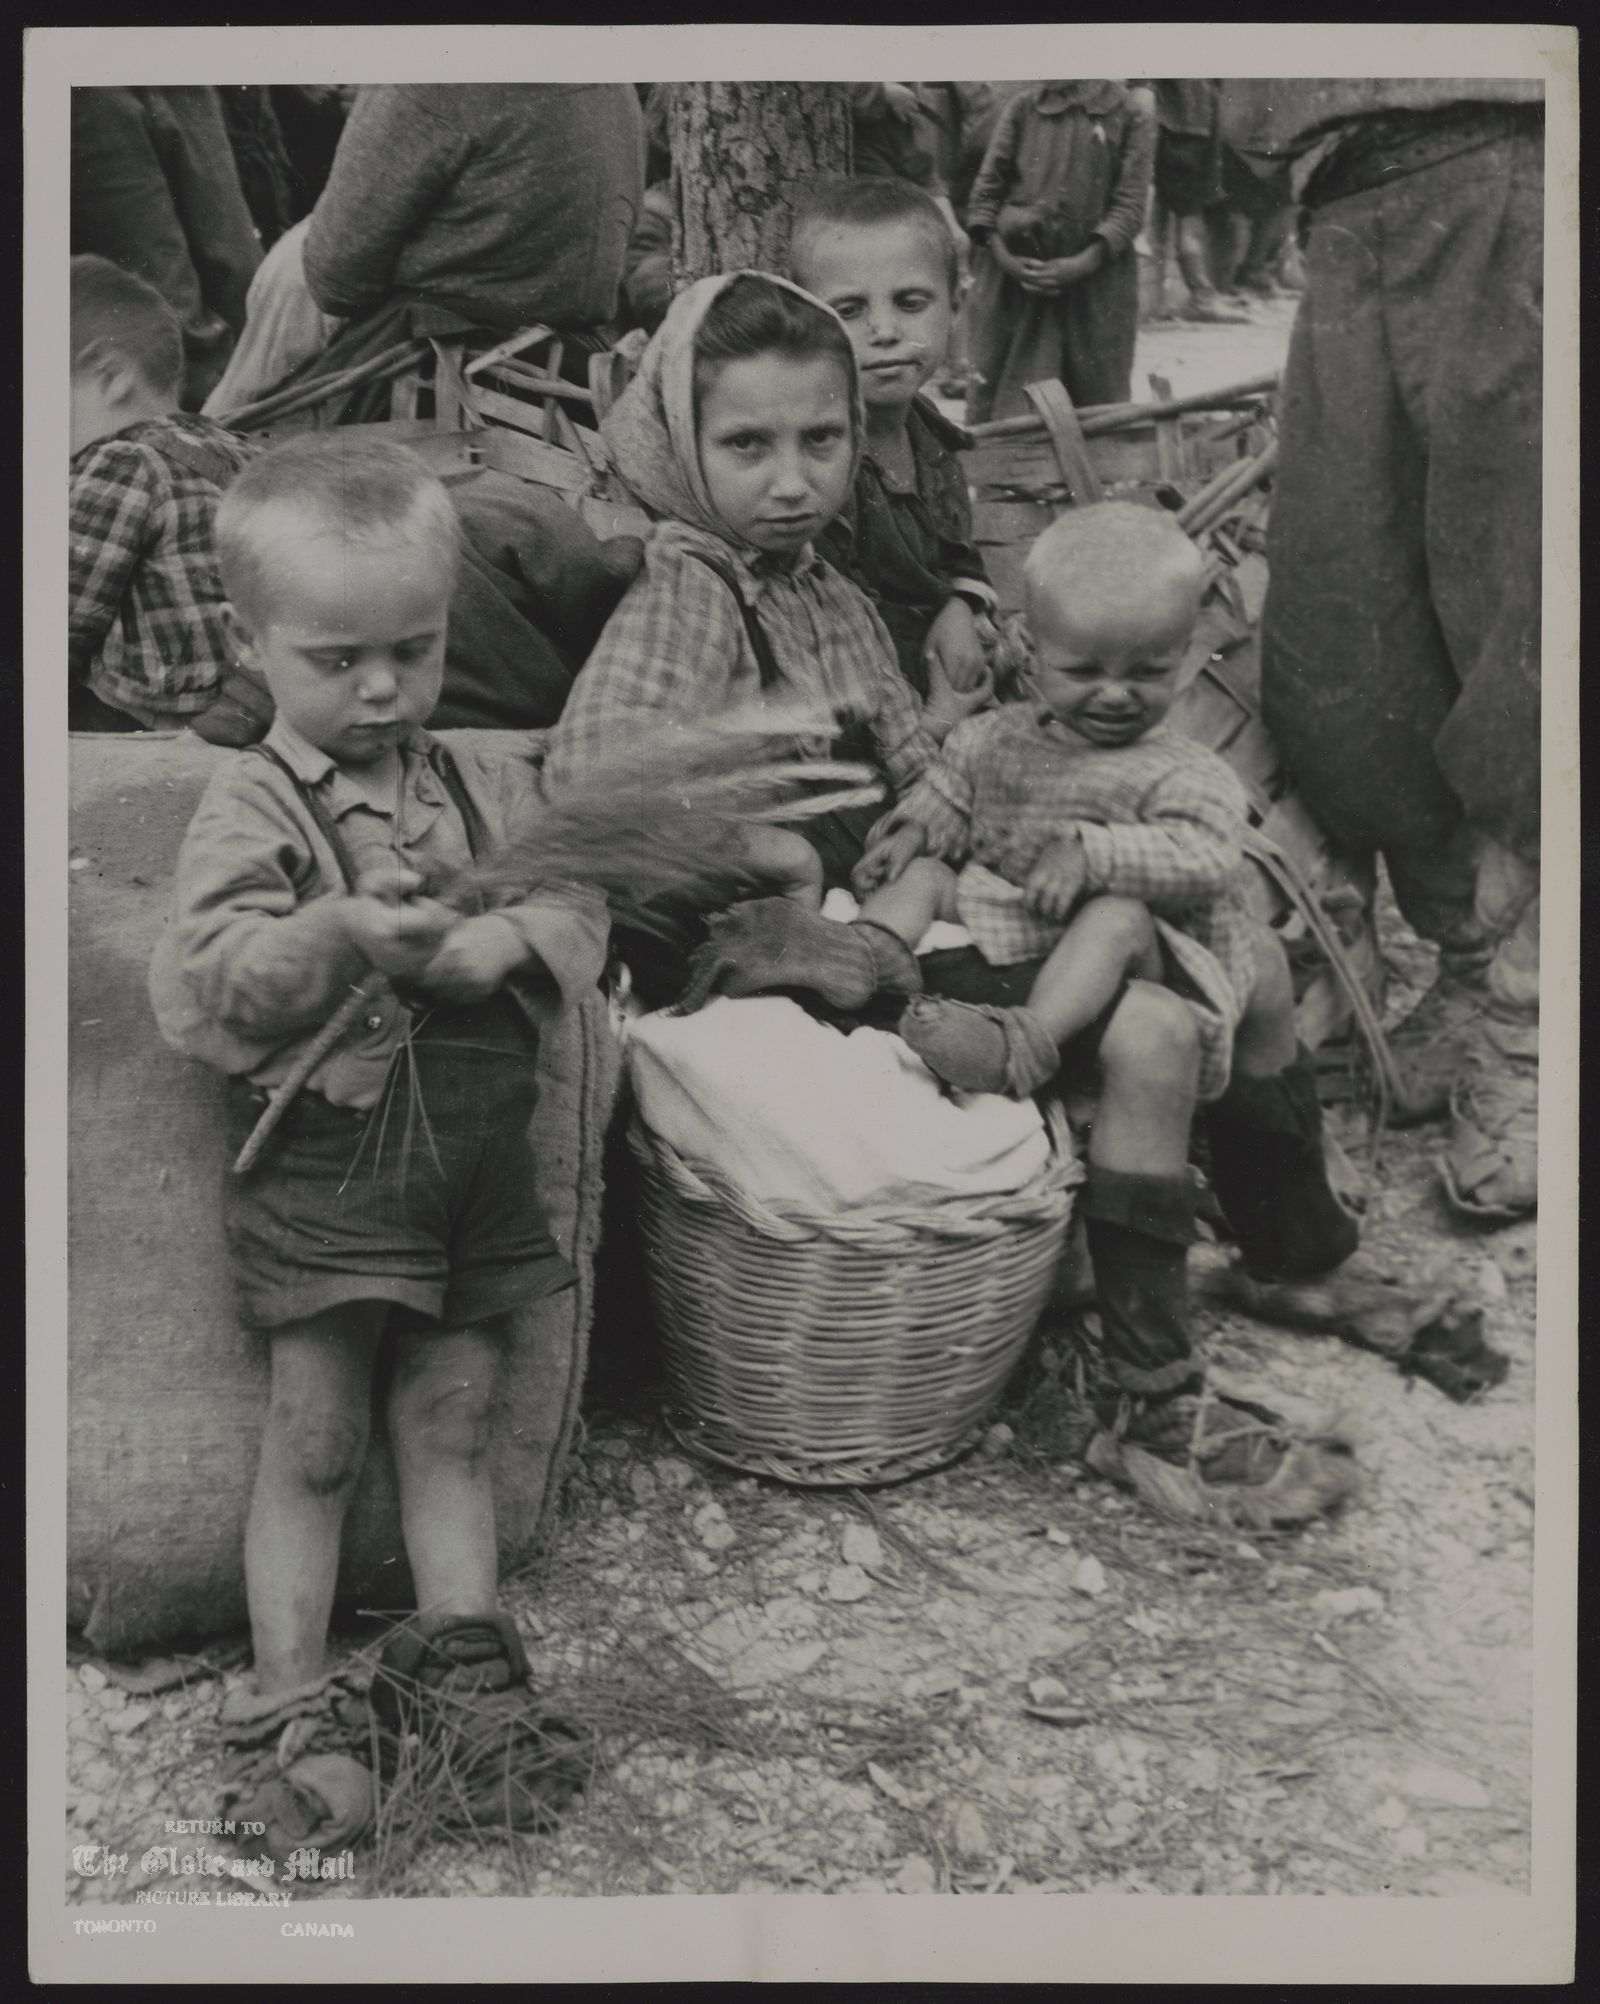 ITALY People (ONE OF A SET) THEY HAVE KNOWN WAR THESE ITALIAN CHILDREN WERE AMONG THE REFUGEES WHO HAD FLED APPROACHING COMBAT LINES AND WHO STREAMED INTO MINTURNO, ITALY AFTER THE TOWN FELL TO THE ALLIES. Associated Press Photo D-5-31-44 1pm MLG-STF 49 A LIST GO-NYW s10-SHUHER-Mon-TOR-TMC-PA-LON-MEX-BAIRES